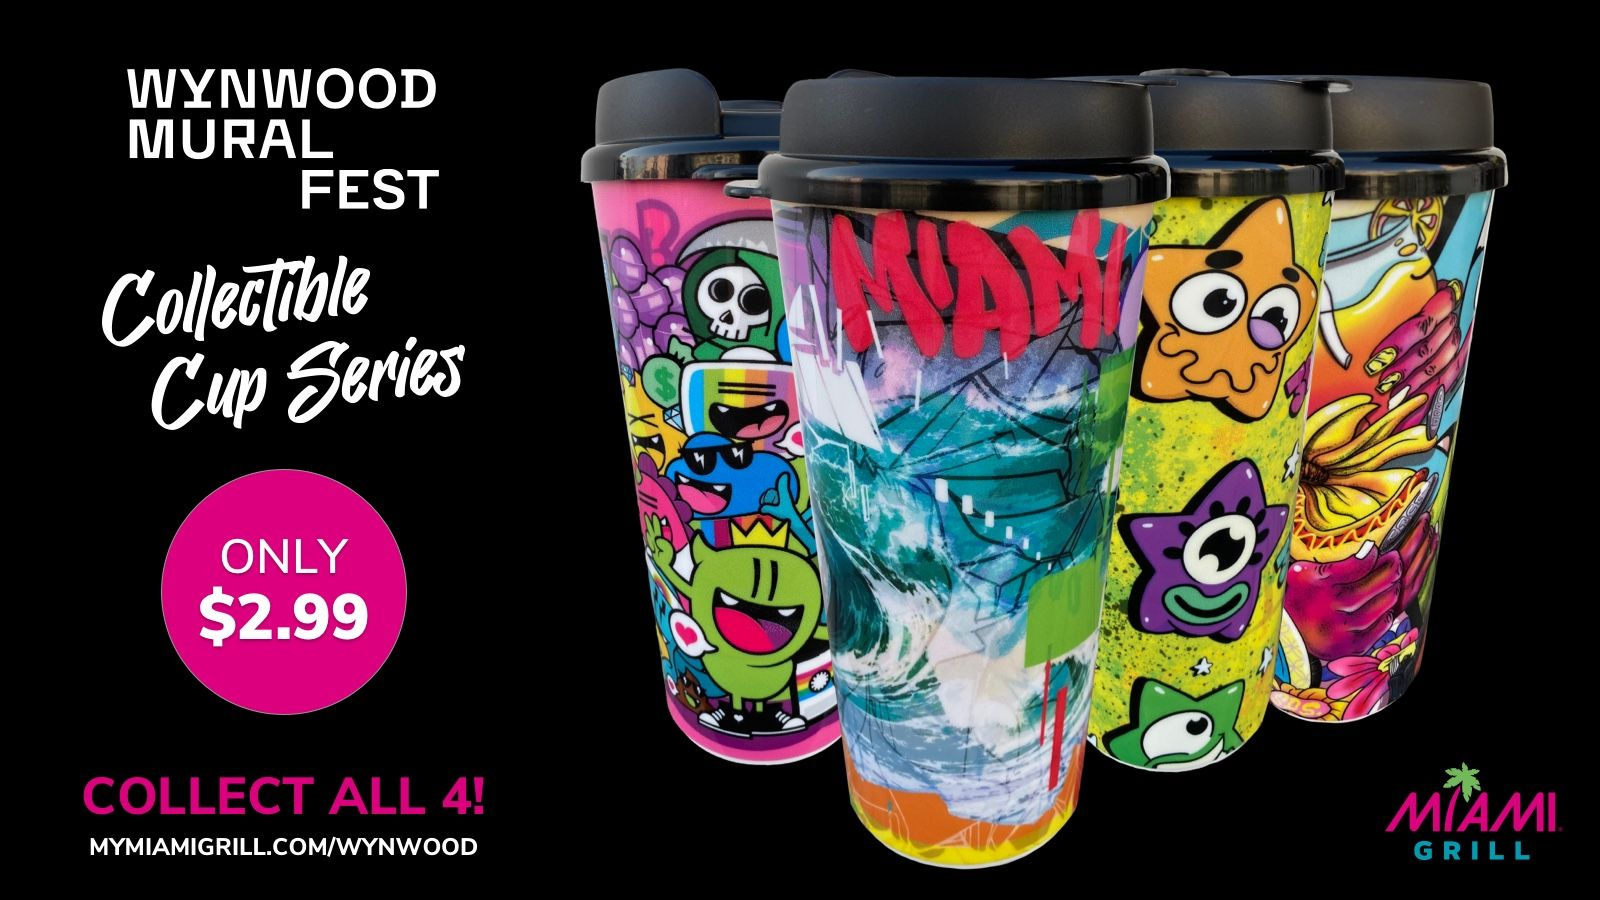 Miami Grill Announces Annual Collectible Cup Launch & Wynwood Mural Fest Sponsorship